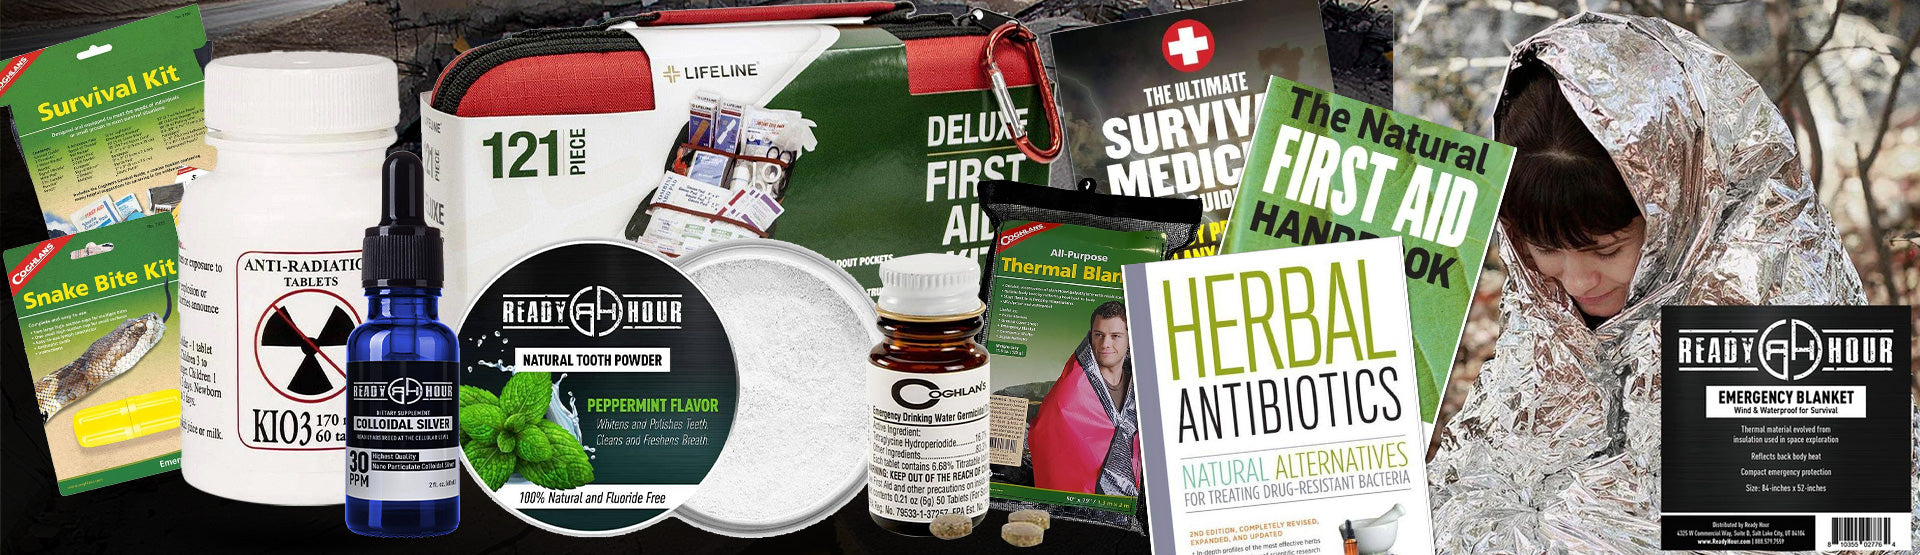 an assortment of first aid and medical supplies, books, medicines, thermal blanket, etc.